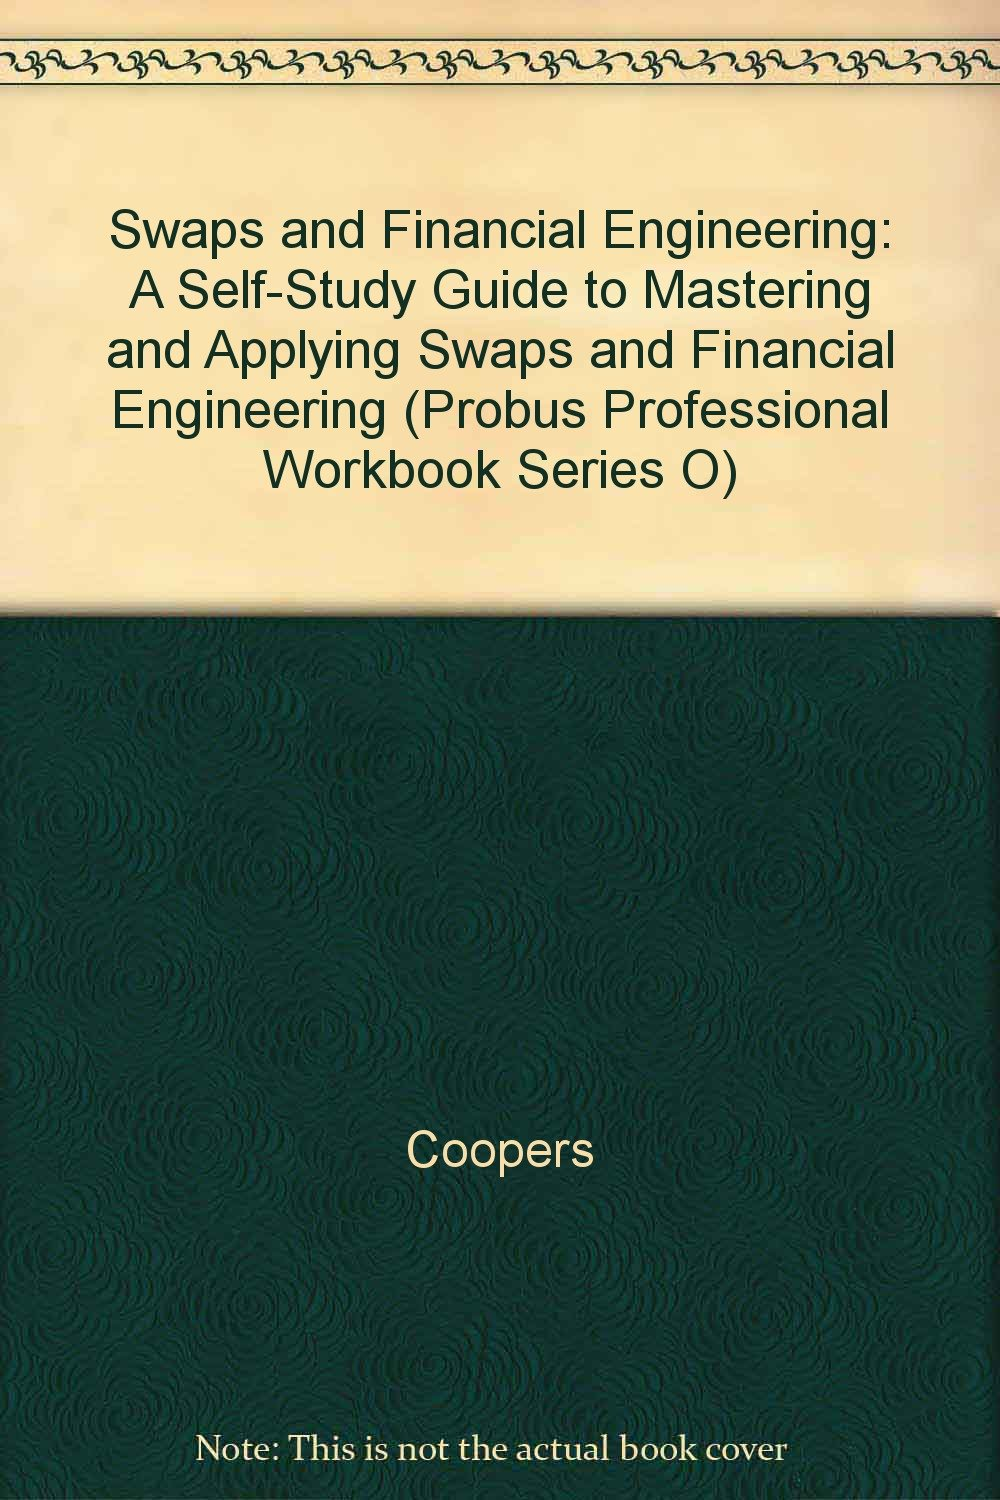 Swaps and Financial Engineering: A Self-Study Guide to Mastering and Applying Swaps and Financial Engineering (Probus Professional Workbook Series O)